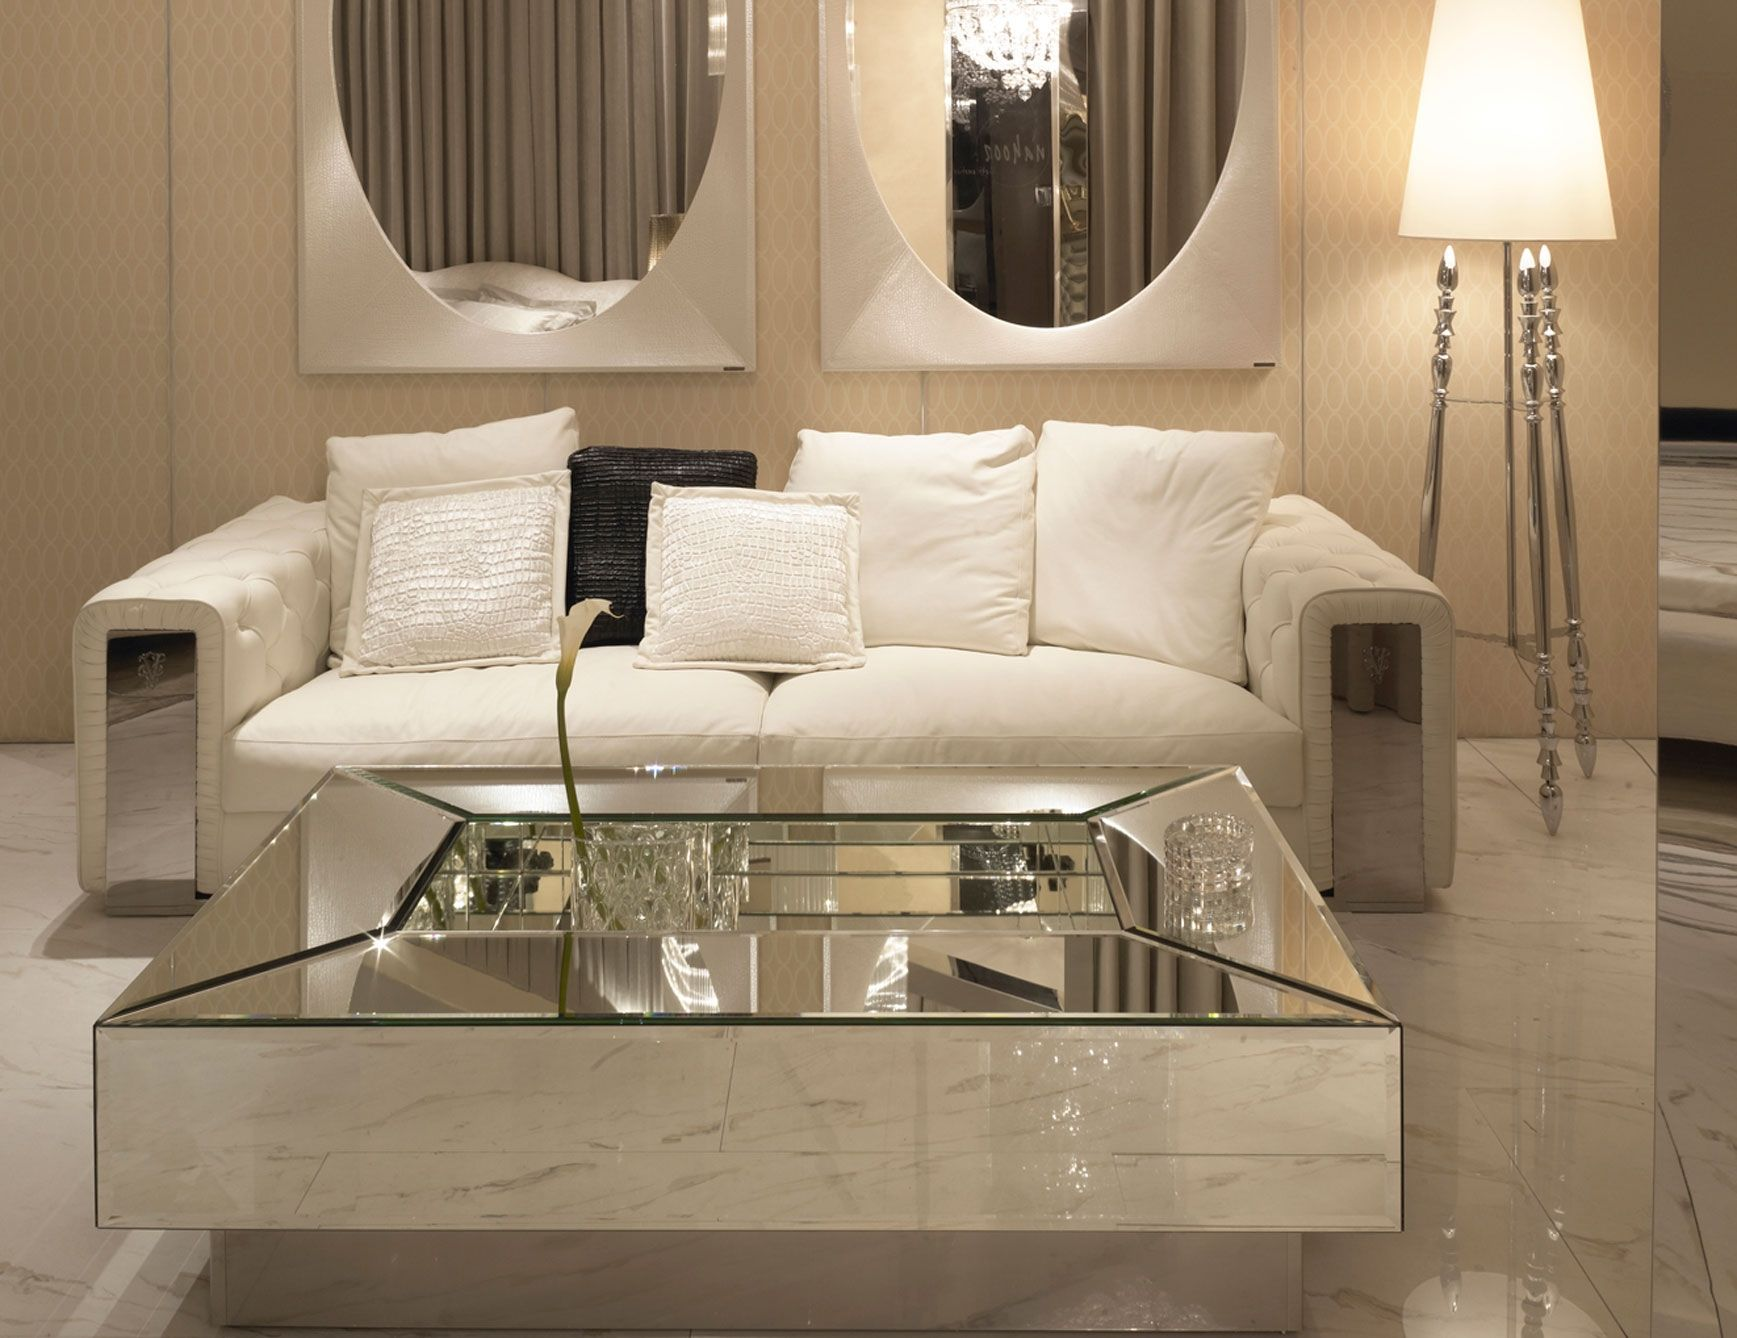 Mesmerizing mirrored coffee table with glass and wood for Modern drawing room furniture